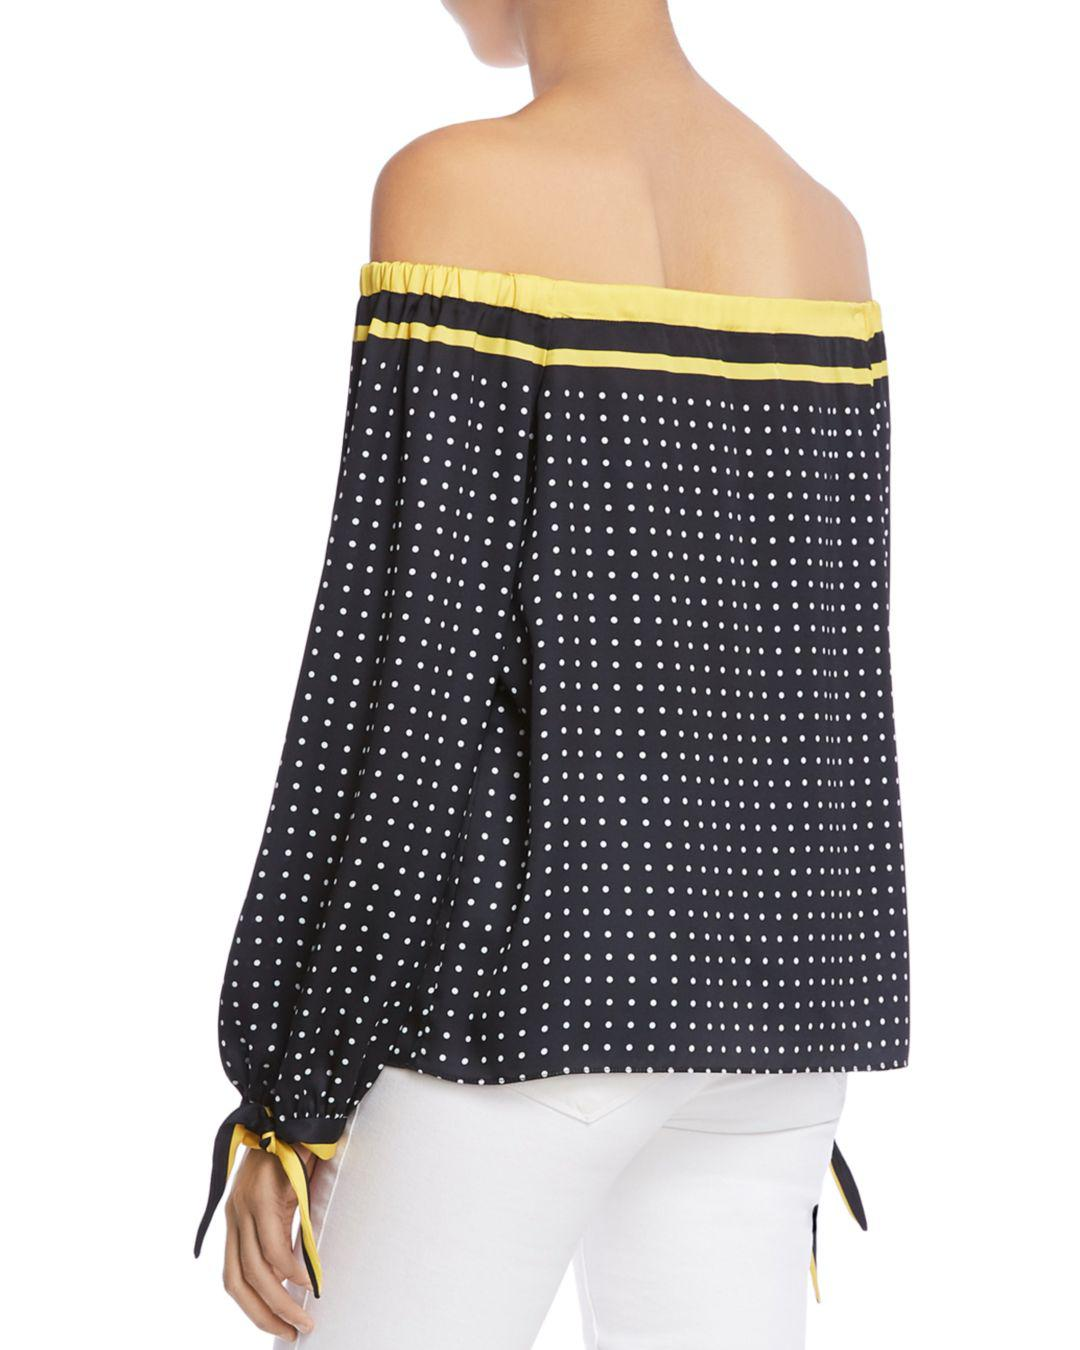 e8dae7867b355 Lyst - Bailey 44 Tabernacle Polka Dot Off-the-shoulder Top - Save 30%